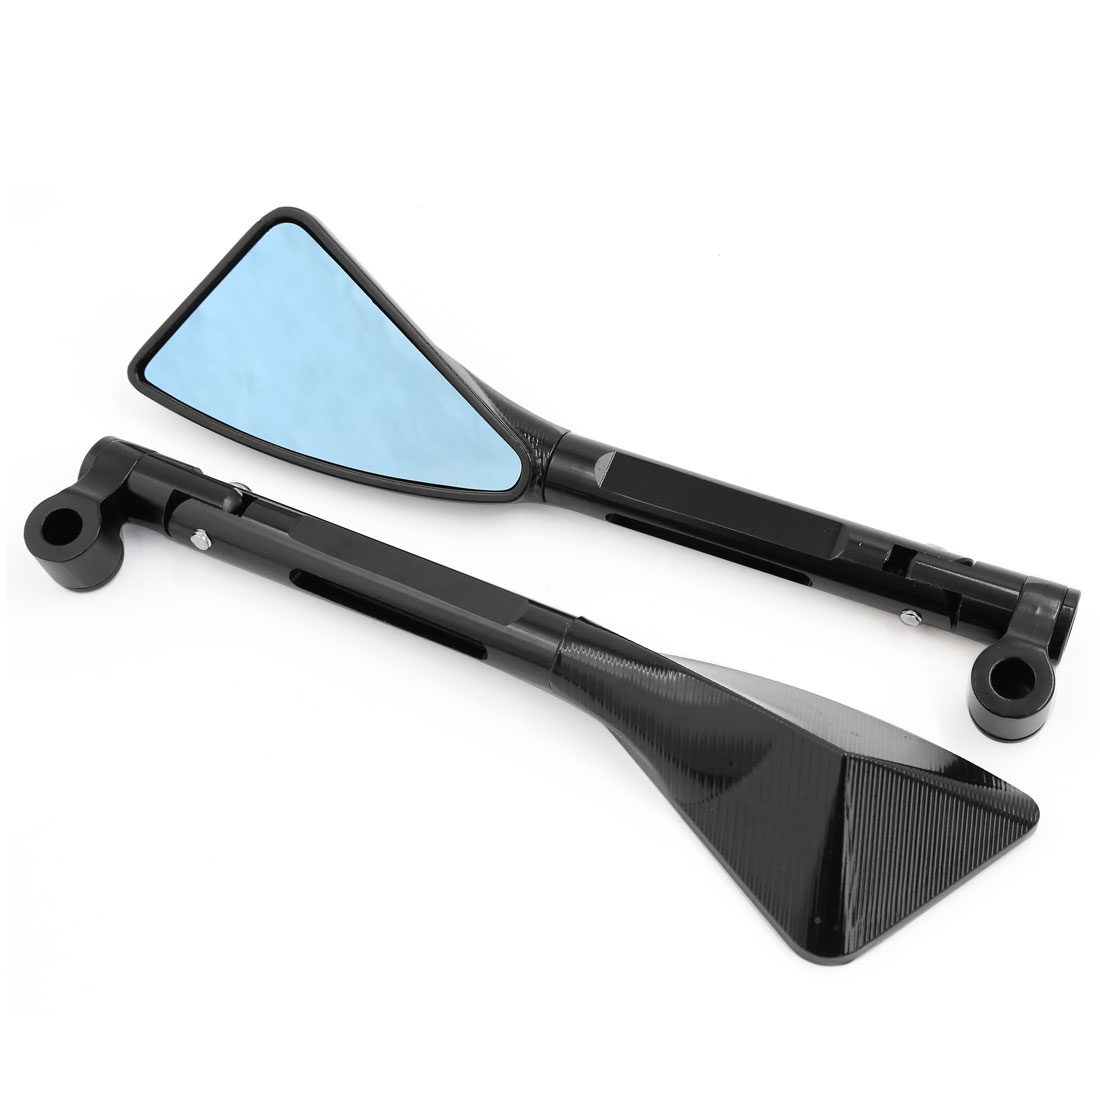 Pair CNC Aluminum Alloy Adjustable Angle Motorcycle Side Rearview Mirrors Black